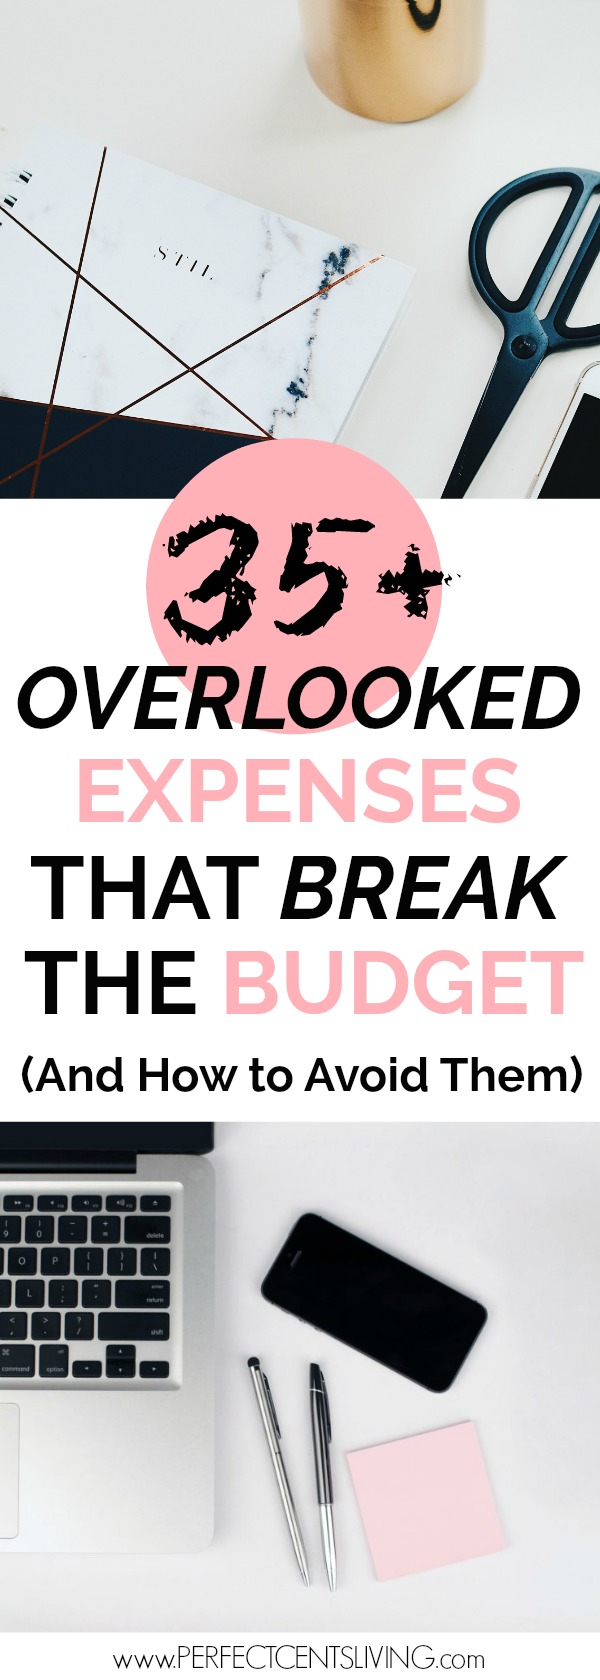 Here is a master list of 35+ overlooked expenses that break the budget every month. Stay on budget by using this one method to avoid overlooked expenses.